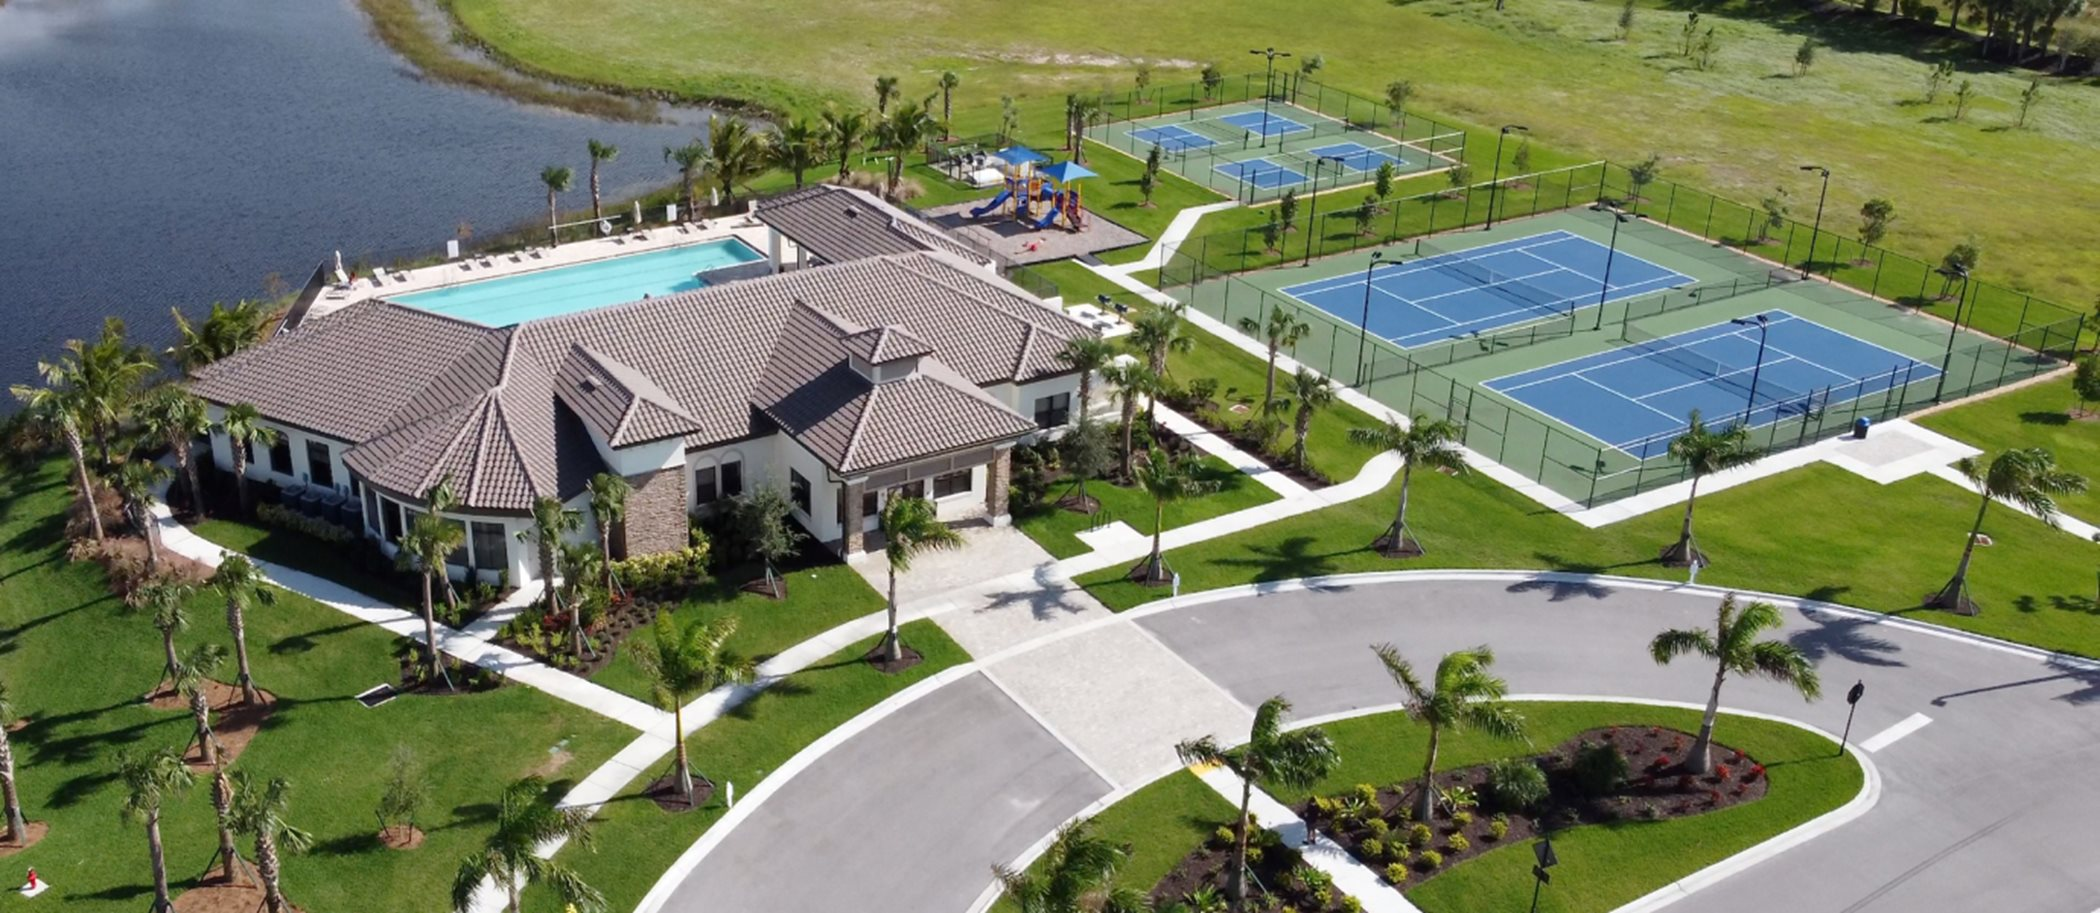 Aerial view of Portico's Clubhouse, Swimming Pool, and Tennis court